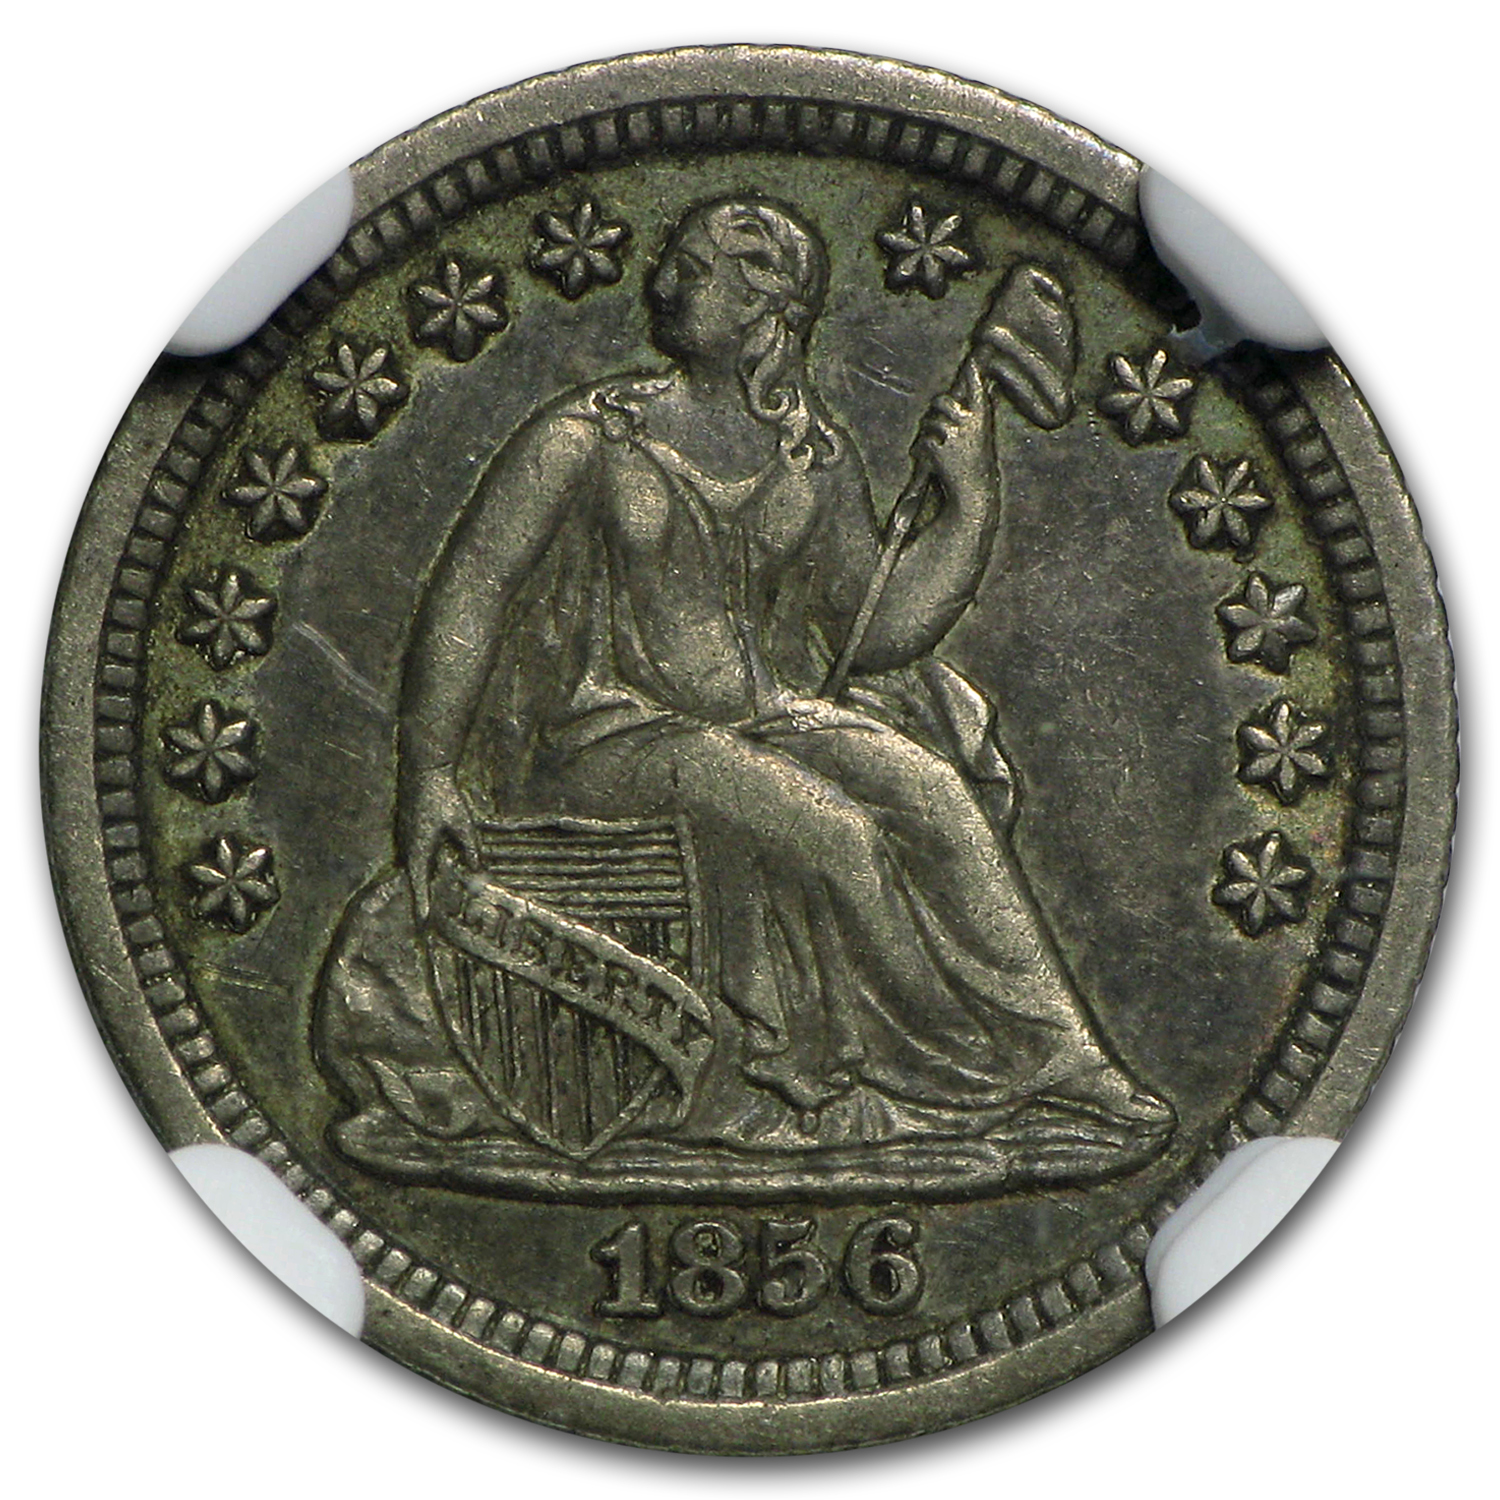 1856-O Liberty Seated Half Dime XF-45 NGC